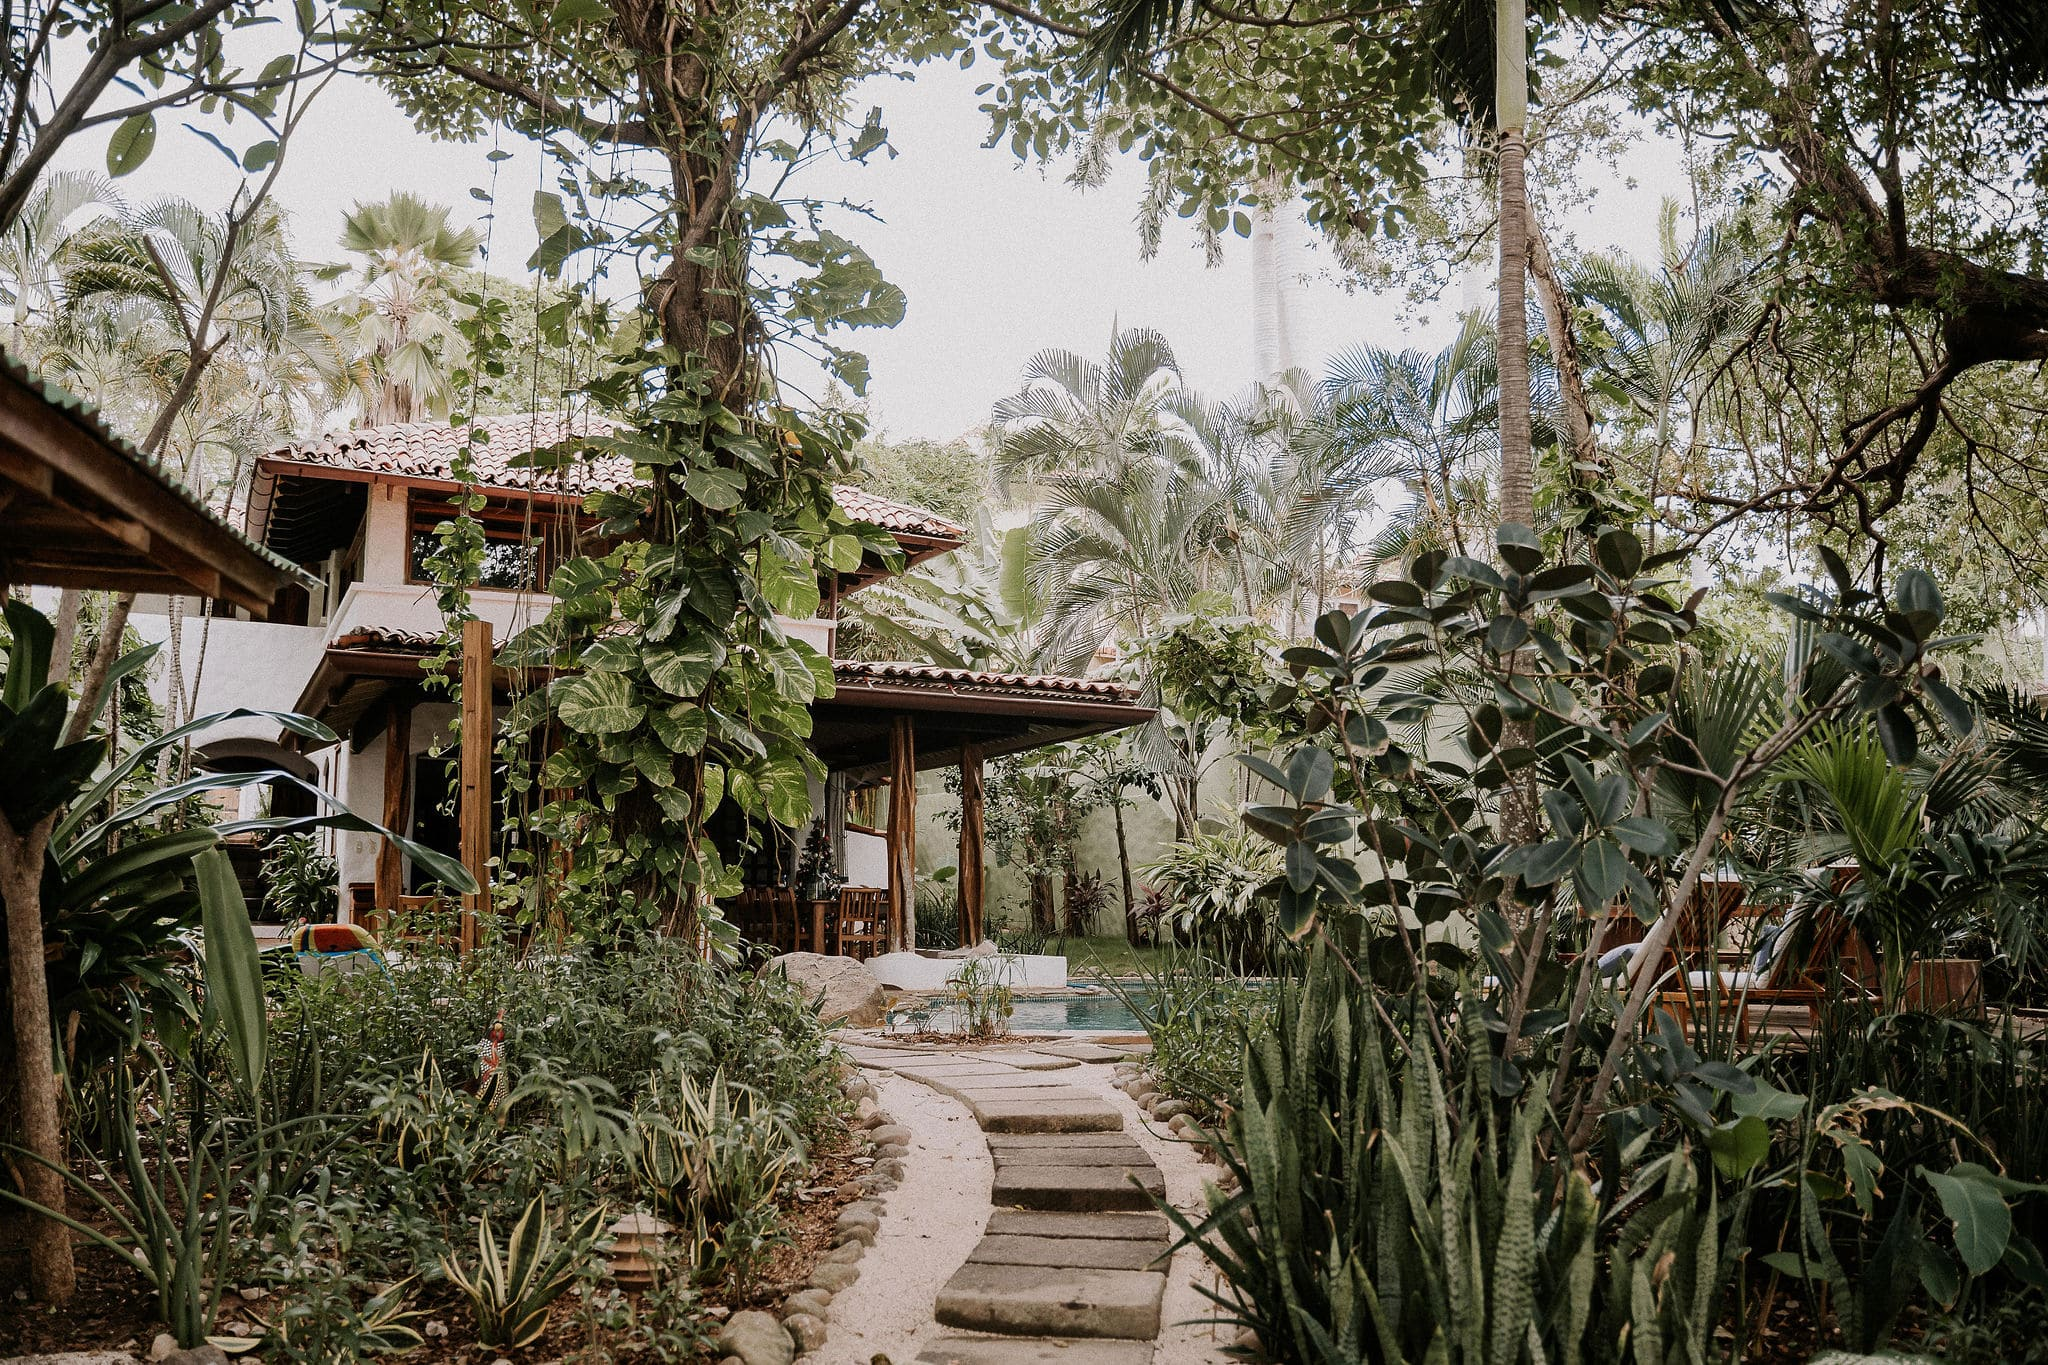 Nataly & Scott's Nature Inspired Destination Wedding In Tamarindo, Costa Rica, Photography by Raw Shoots Photography for Luxury Destination Wedding network Adriana Weddings